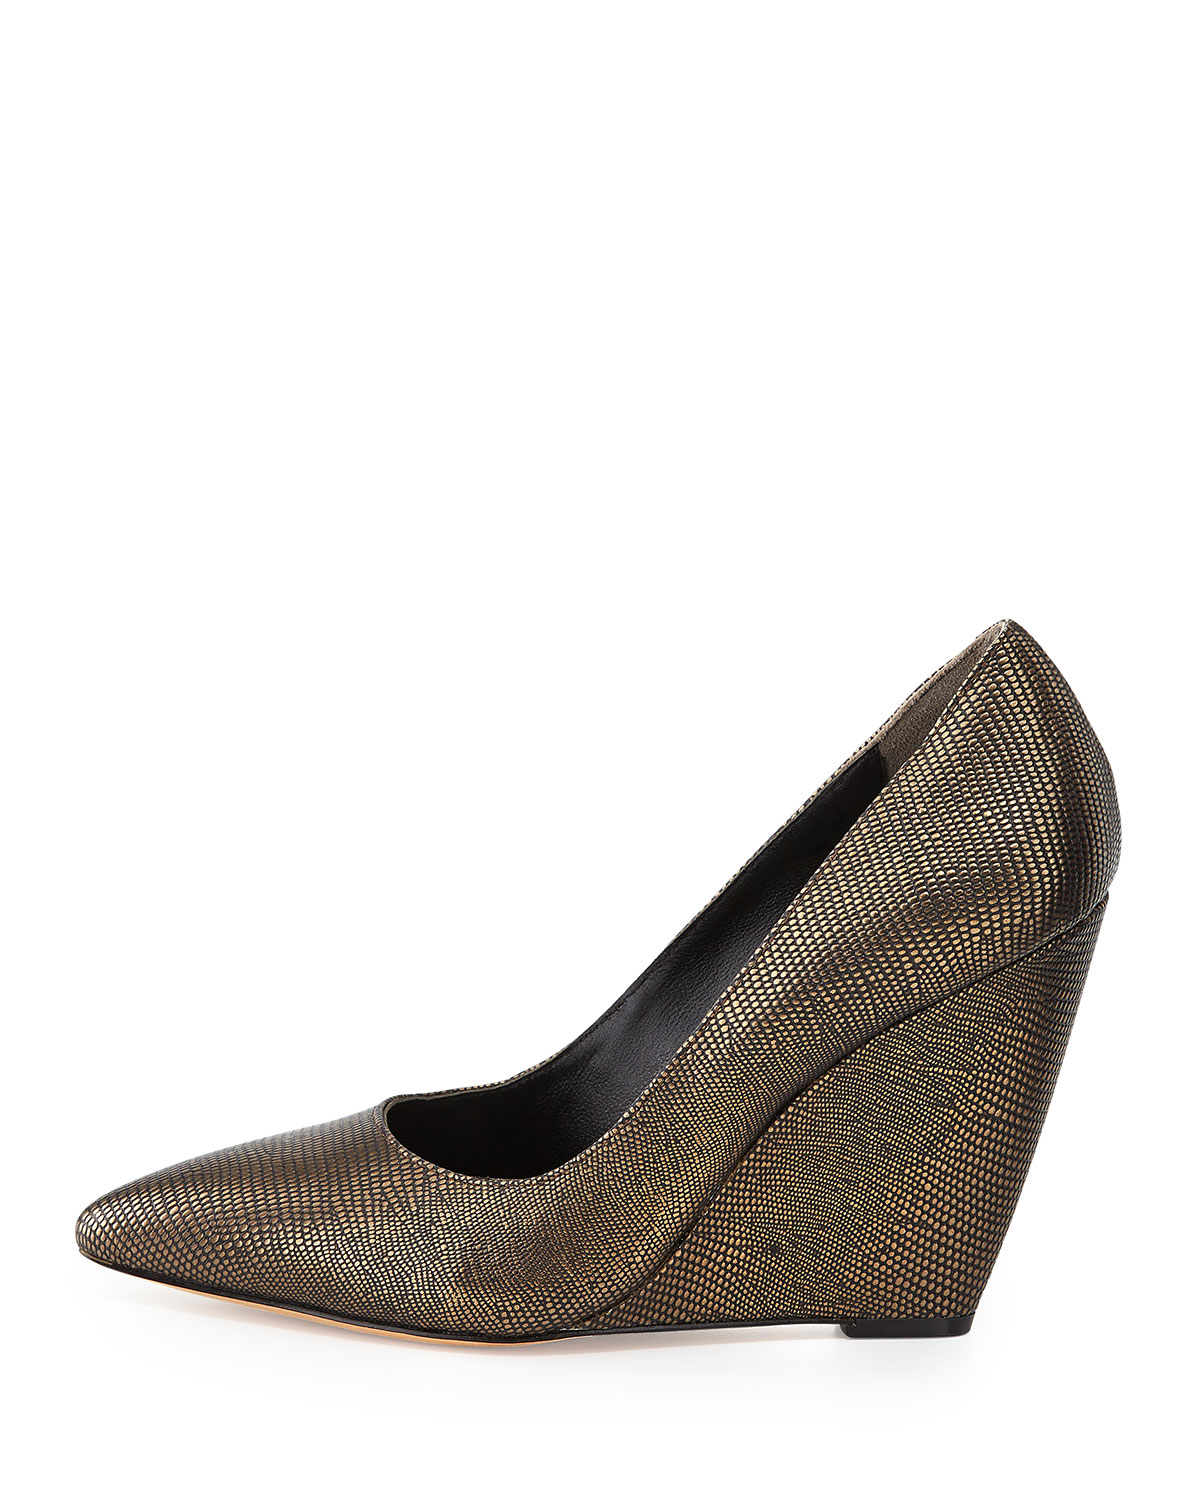 Bronze Wedge Dress Shoes